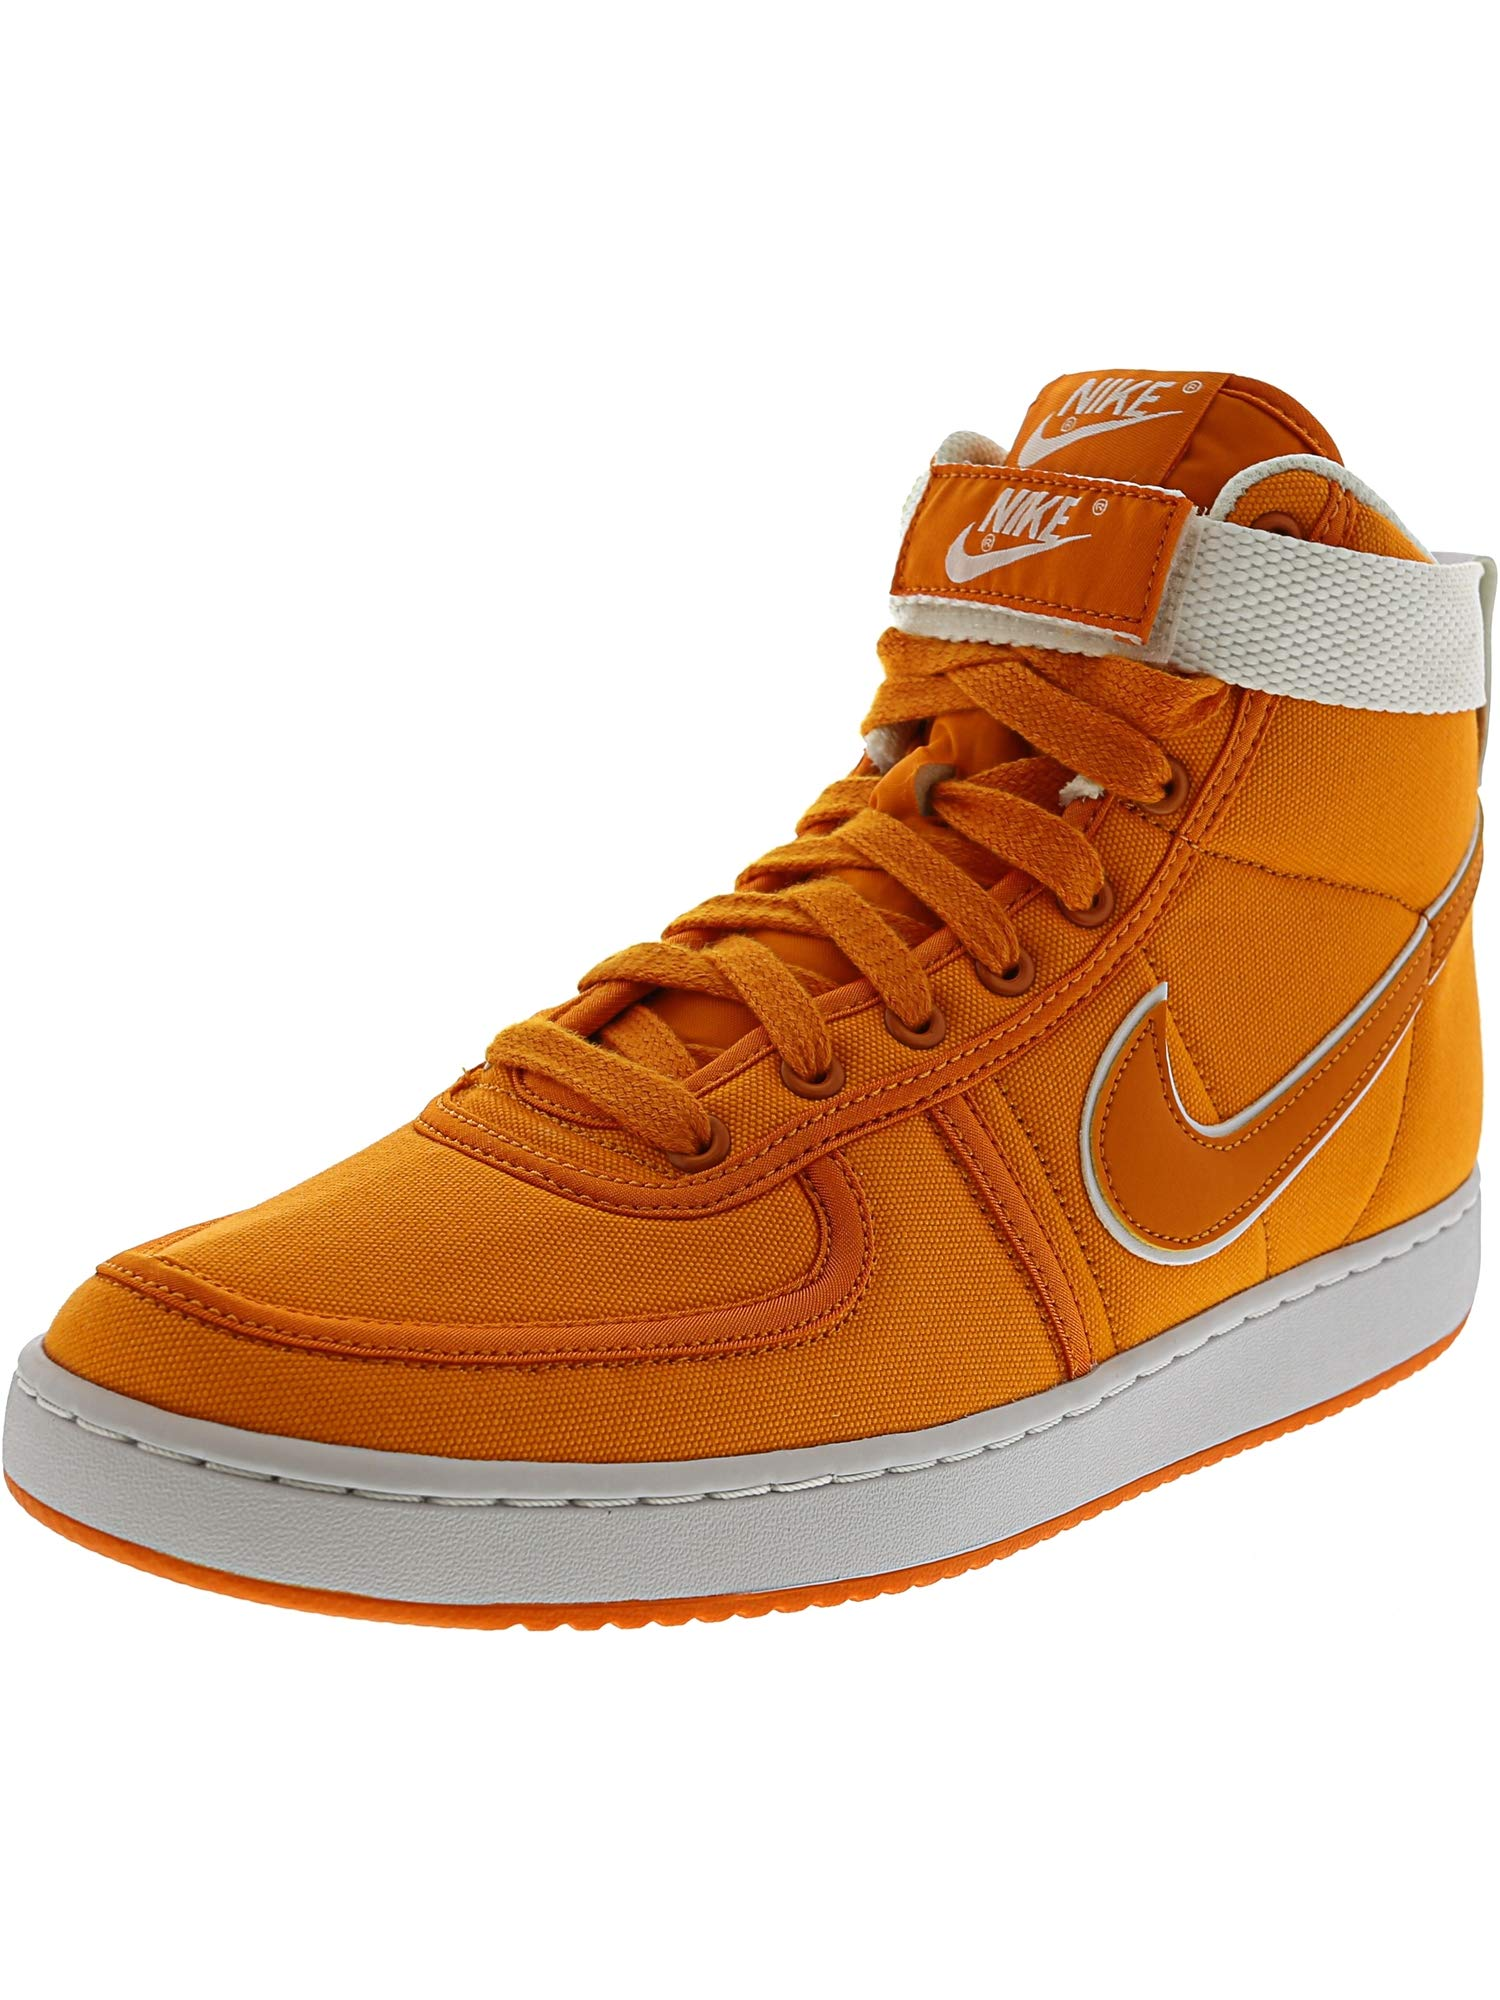 Galleon - Nike Vandal High Supreme Cnvs QS Mens Fashion-Sneakers  AH8605-800 9 - Bright Ceramic White-White fcd61cd51